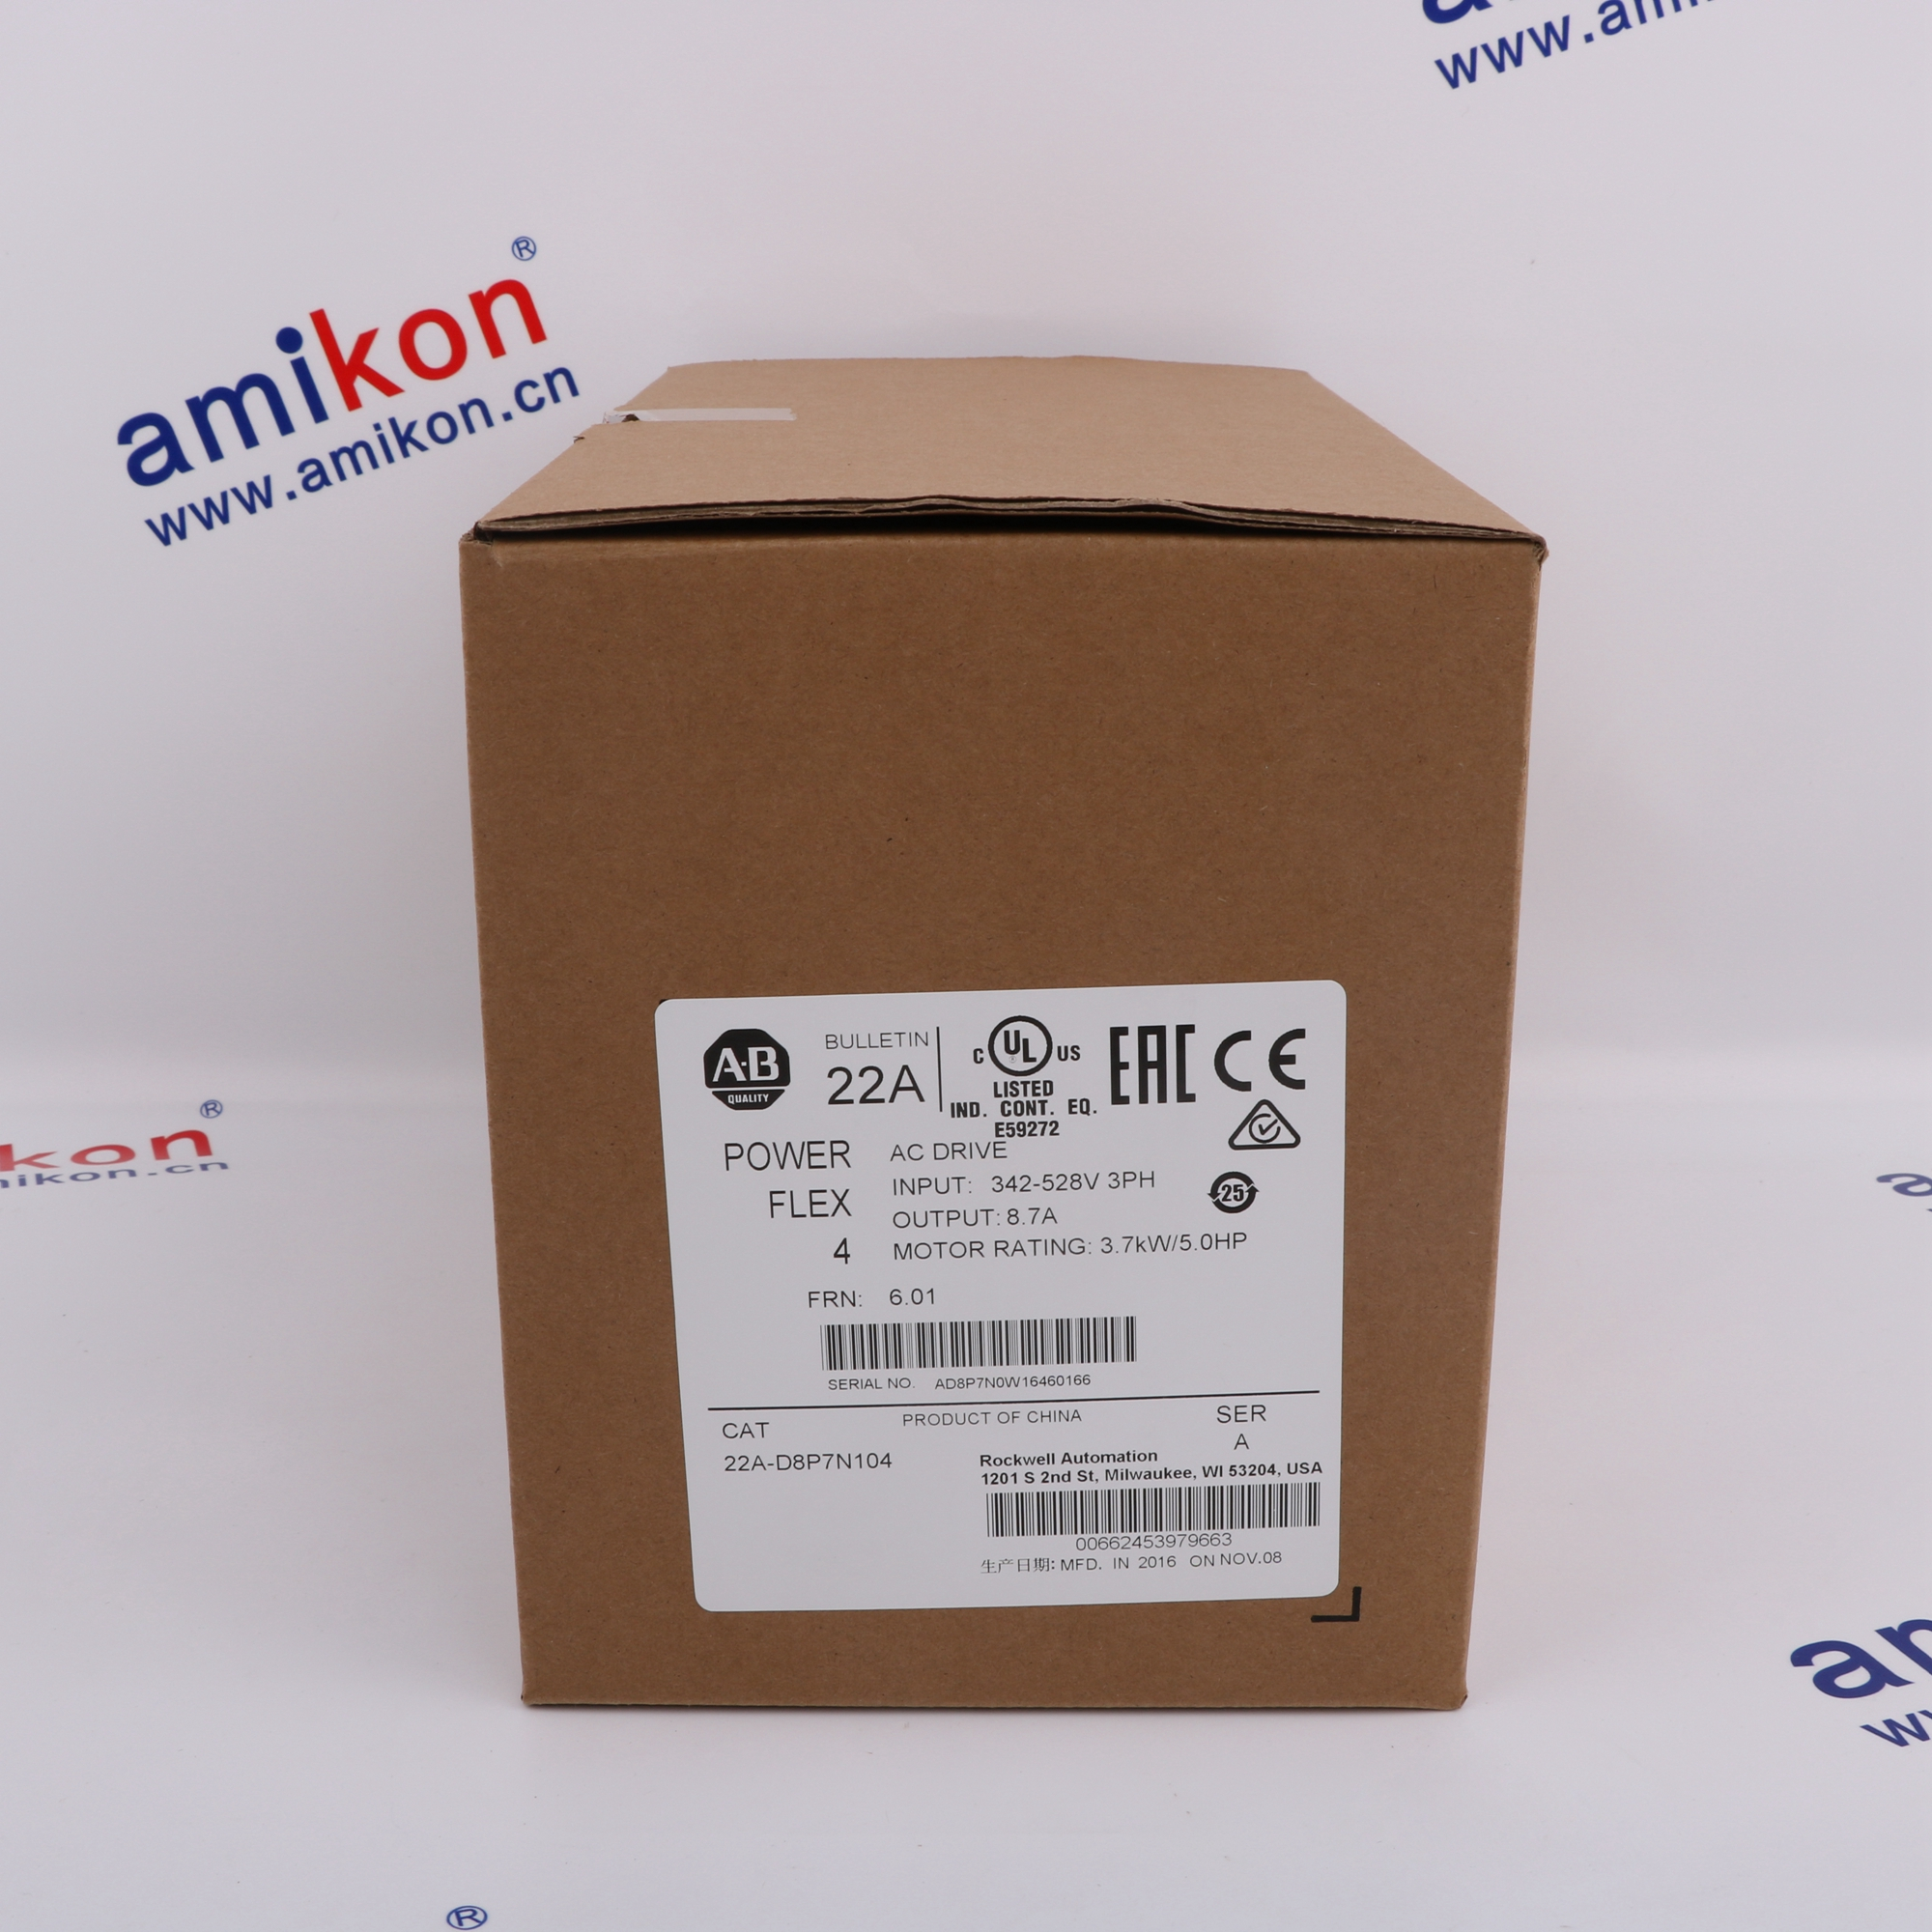 HIMA F8650E sales2@amikon.cn NEW IN STOCK electrical distributors BIG DISCOUNT